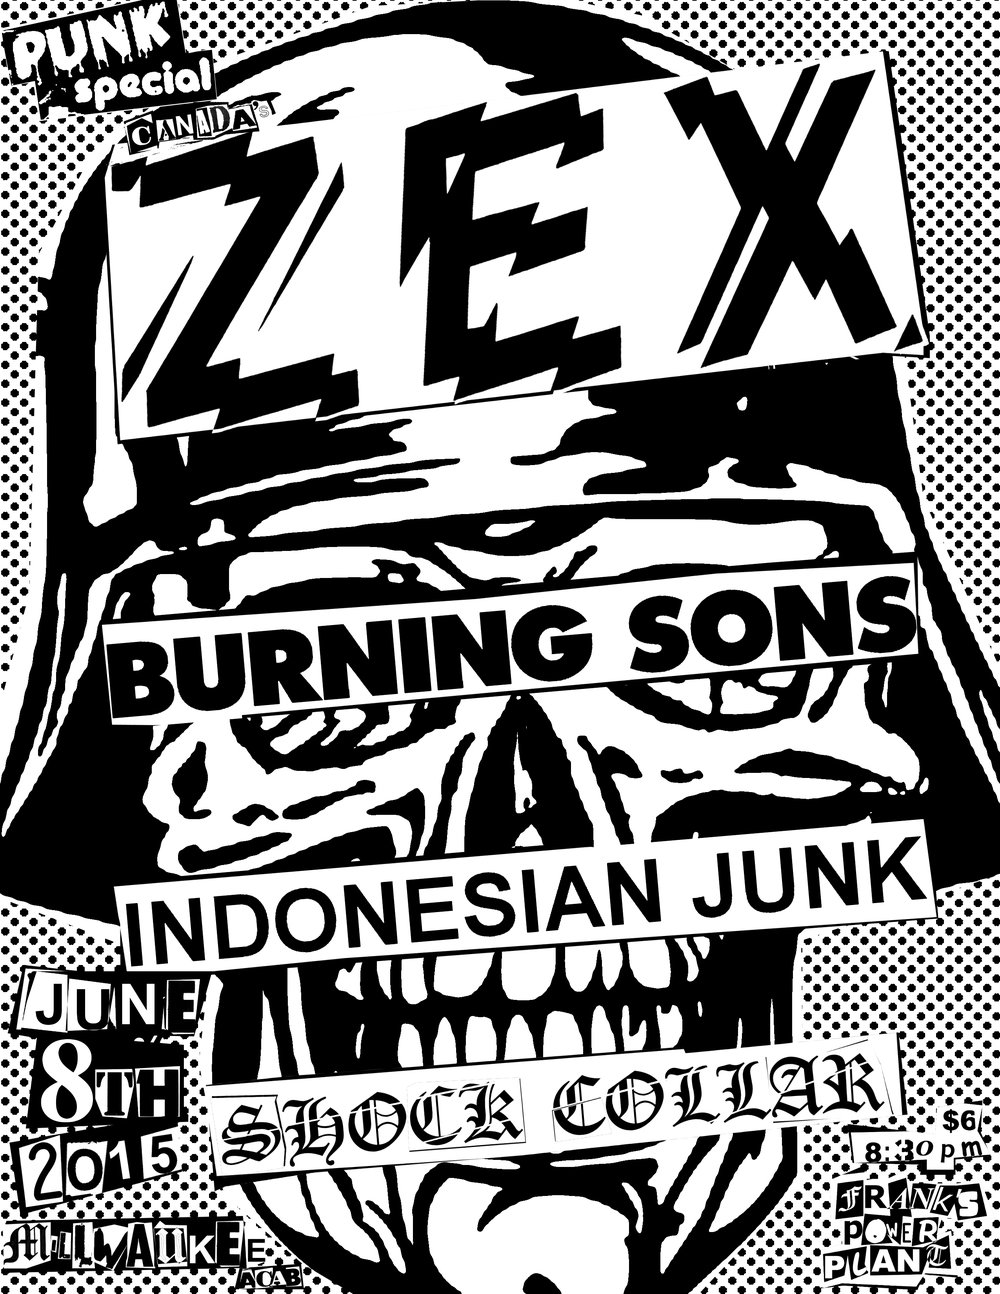 flyer-15.06.08-milwaukee-zex.jpg